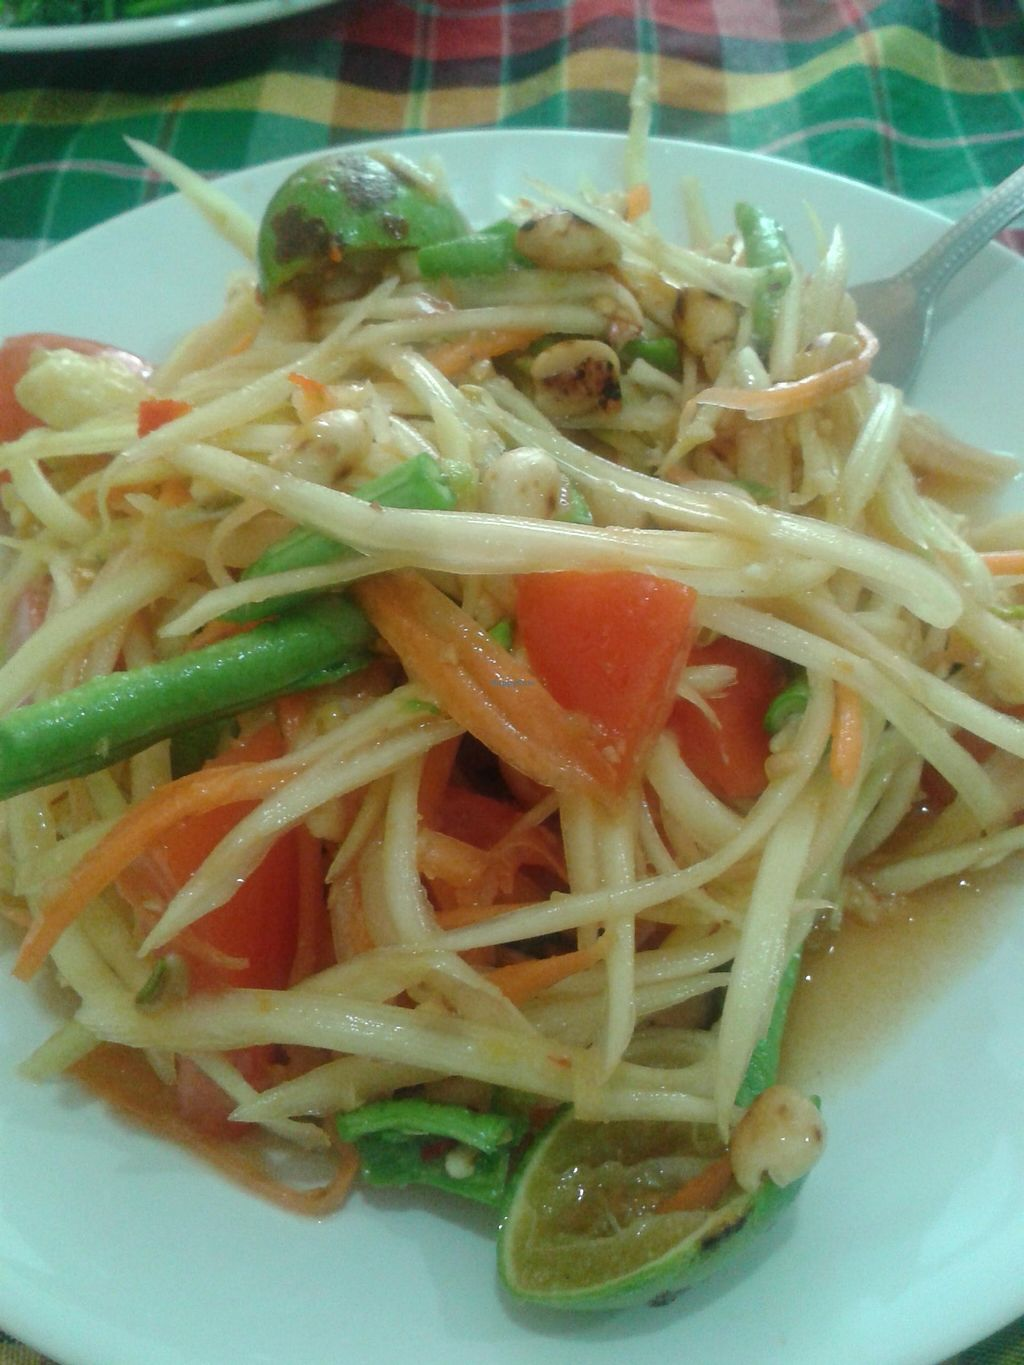 """Photo of On's Thai Isaan  by <a href=""""/members/profile/MiriamAgat"""">MiriamAgat</a> <br/>Papaya salad <br/> February 4, 2016  - <a href='/contact/abuse/image/33830/135040'>Report</a>"""